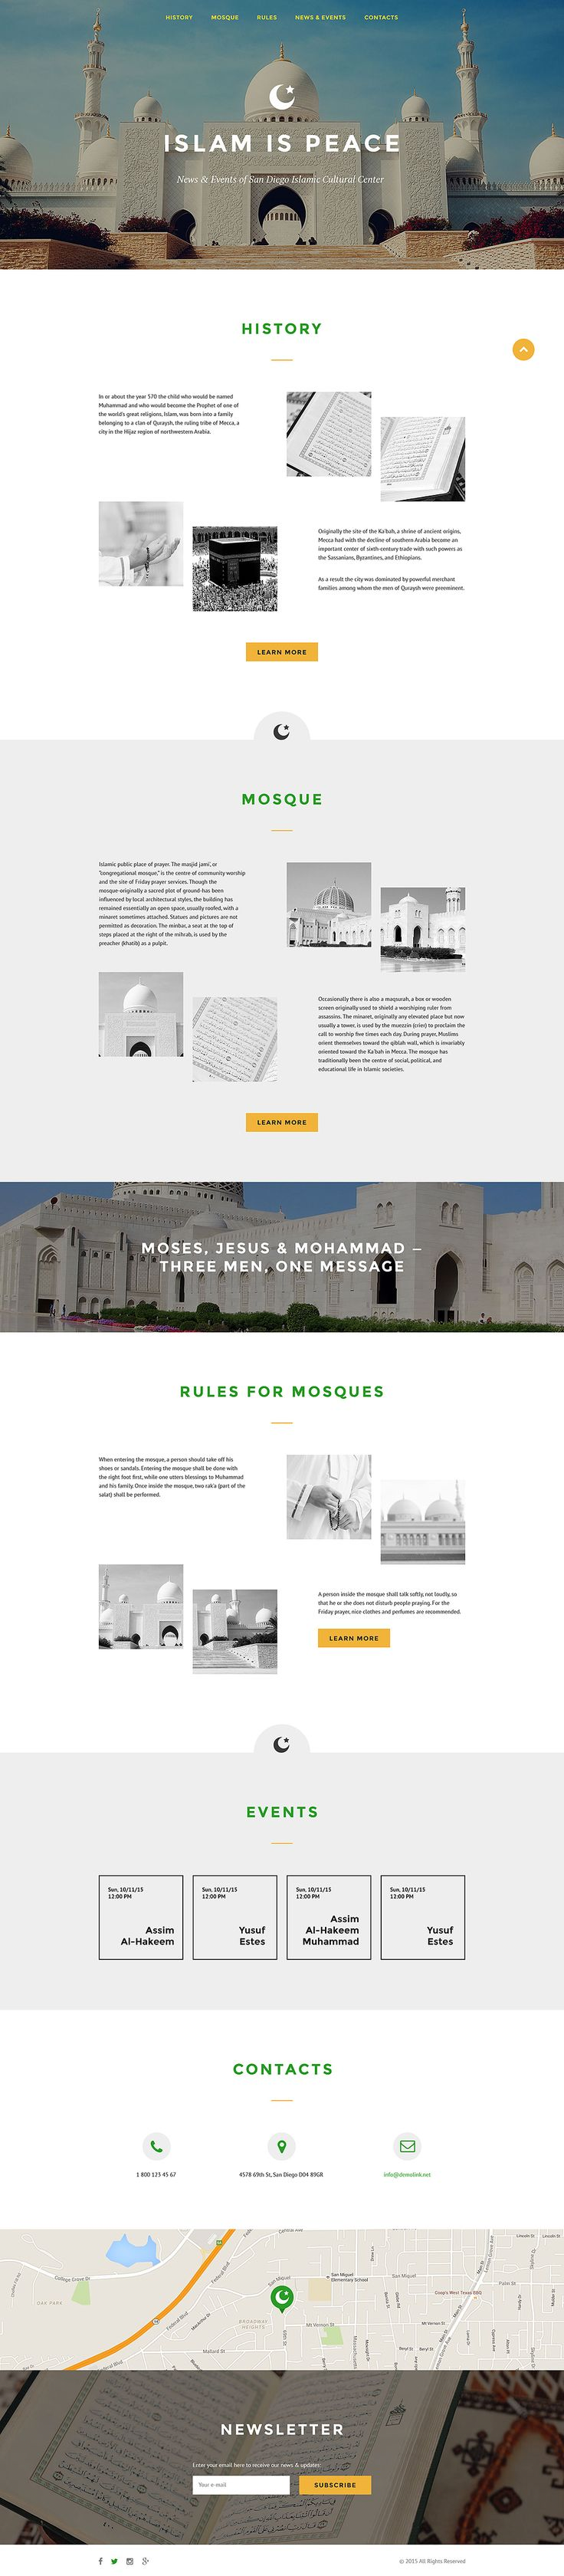 Islam Responsive Landing Page Template #57706